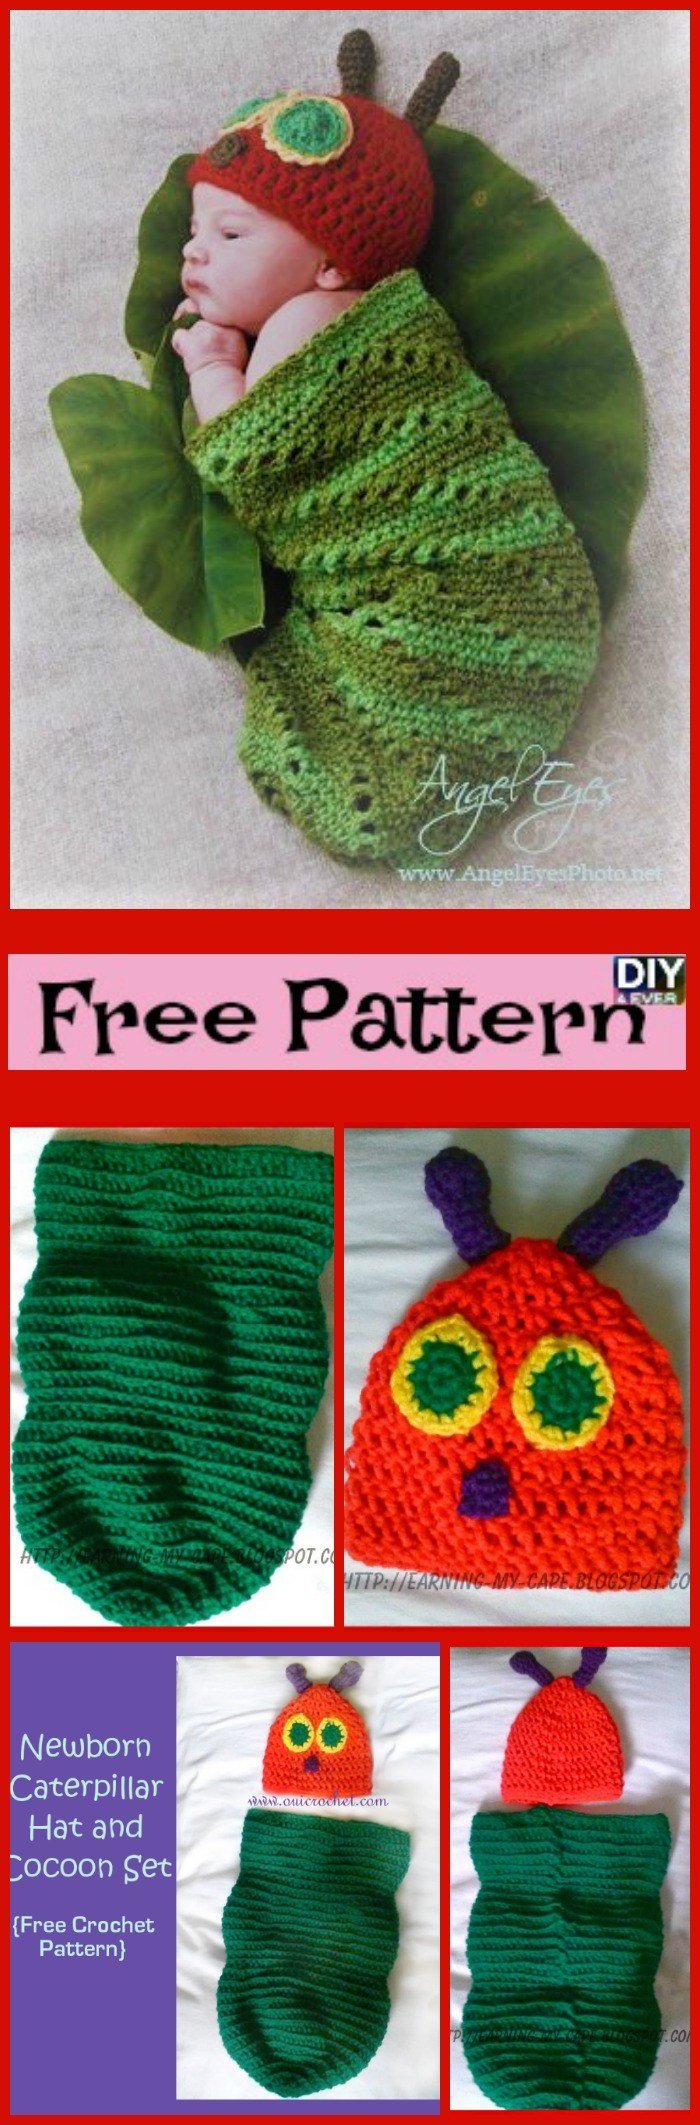 diy4ever- Crochet Caterpillar Hat Cocoon Set - Free Pattern